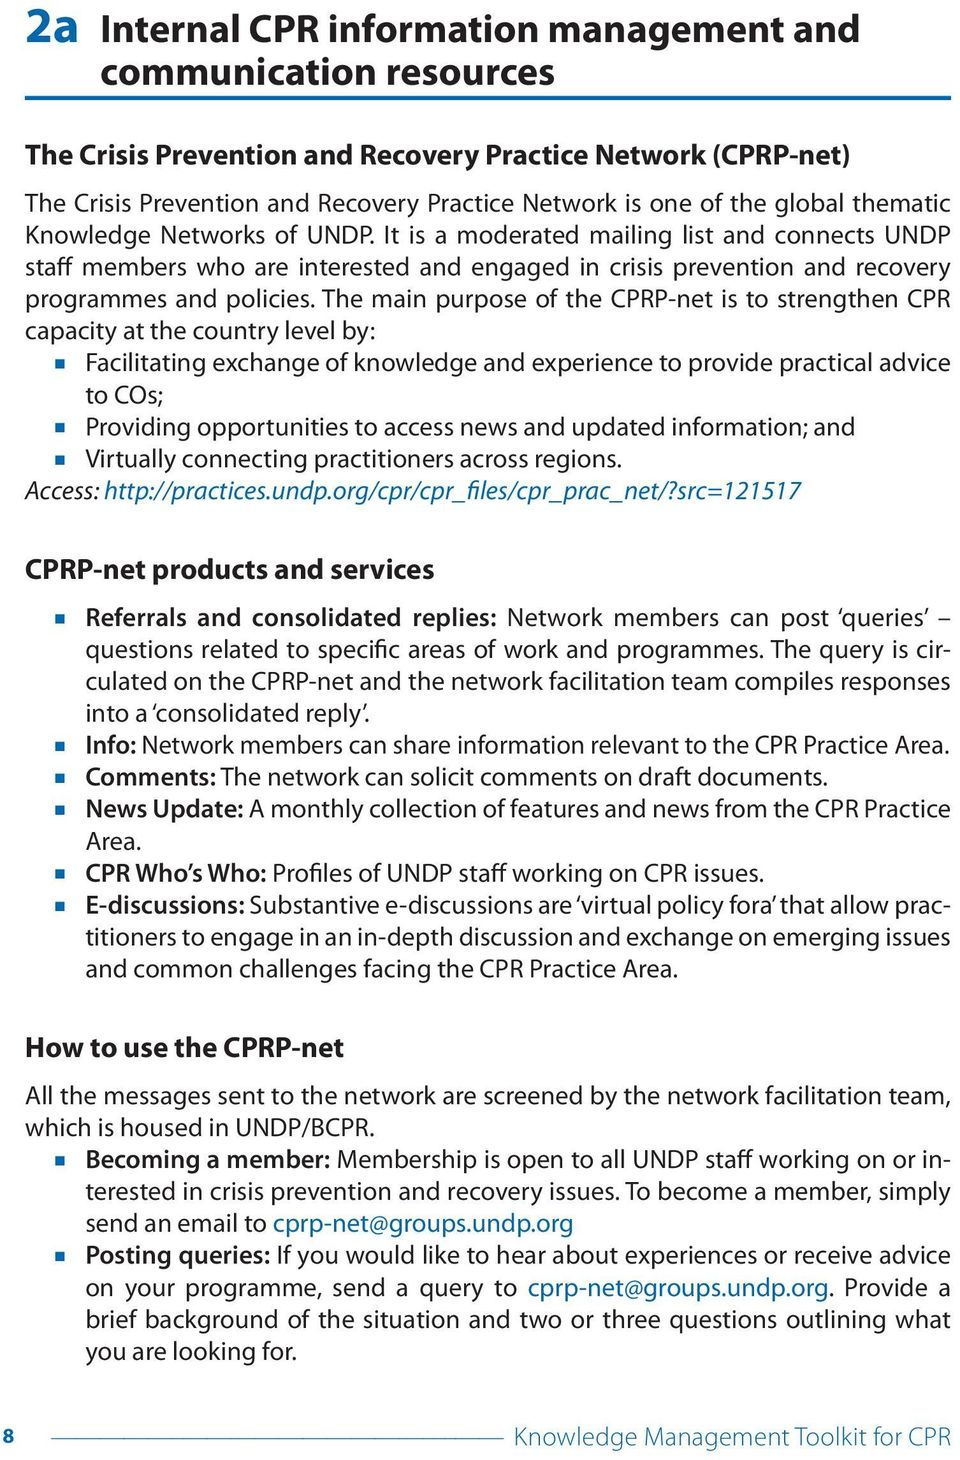 The main purpose of the CPRP-net is to strengthen CPR capacity at the country level by: Facilitating exchange of knowledge and experience to provide practical advice to COs; Providing opportunities